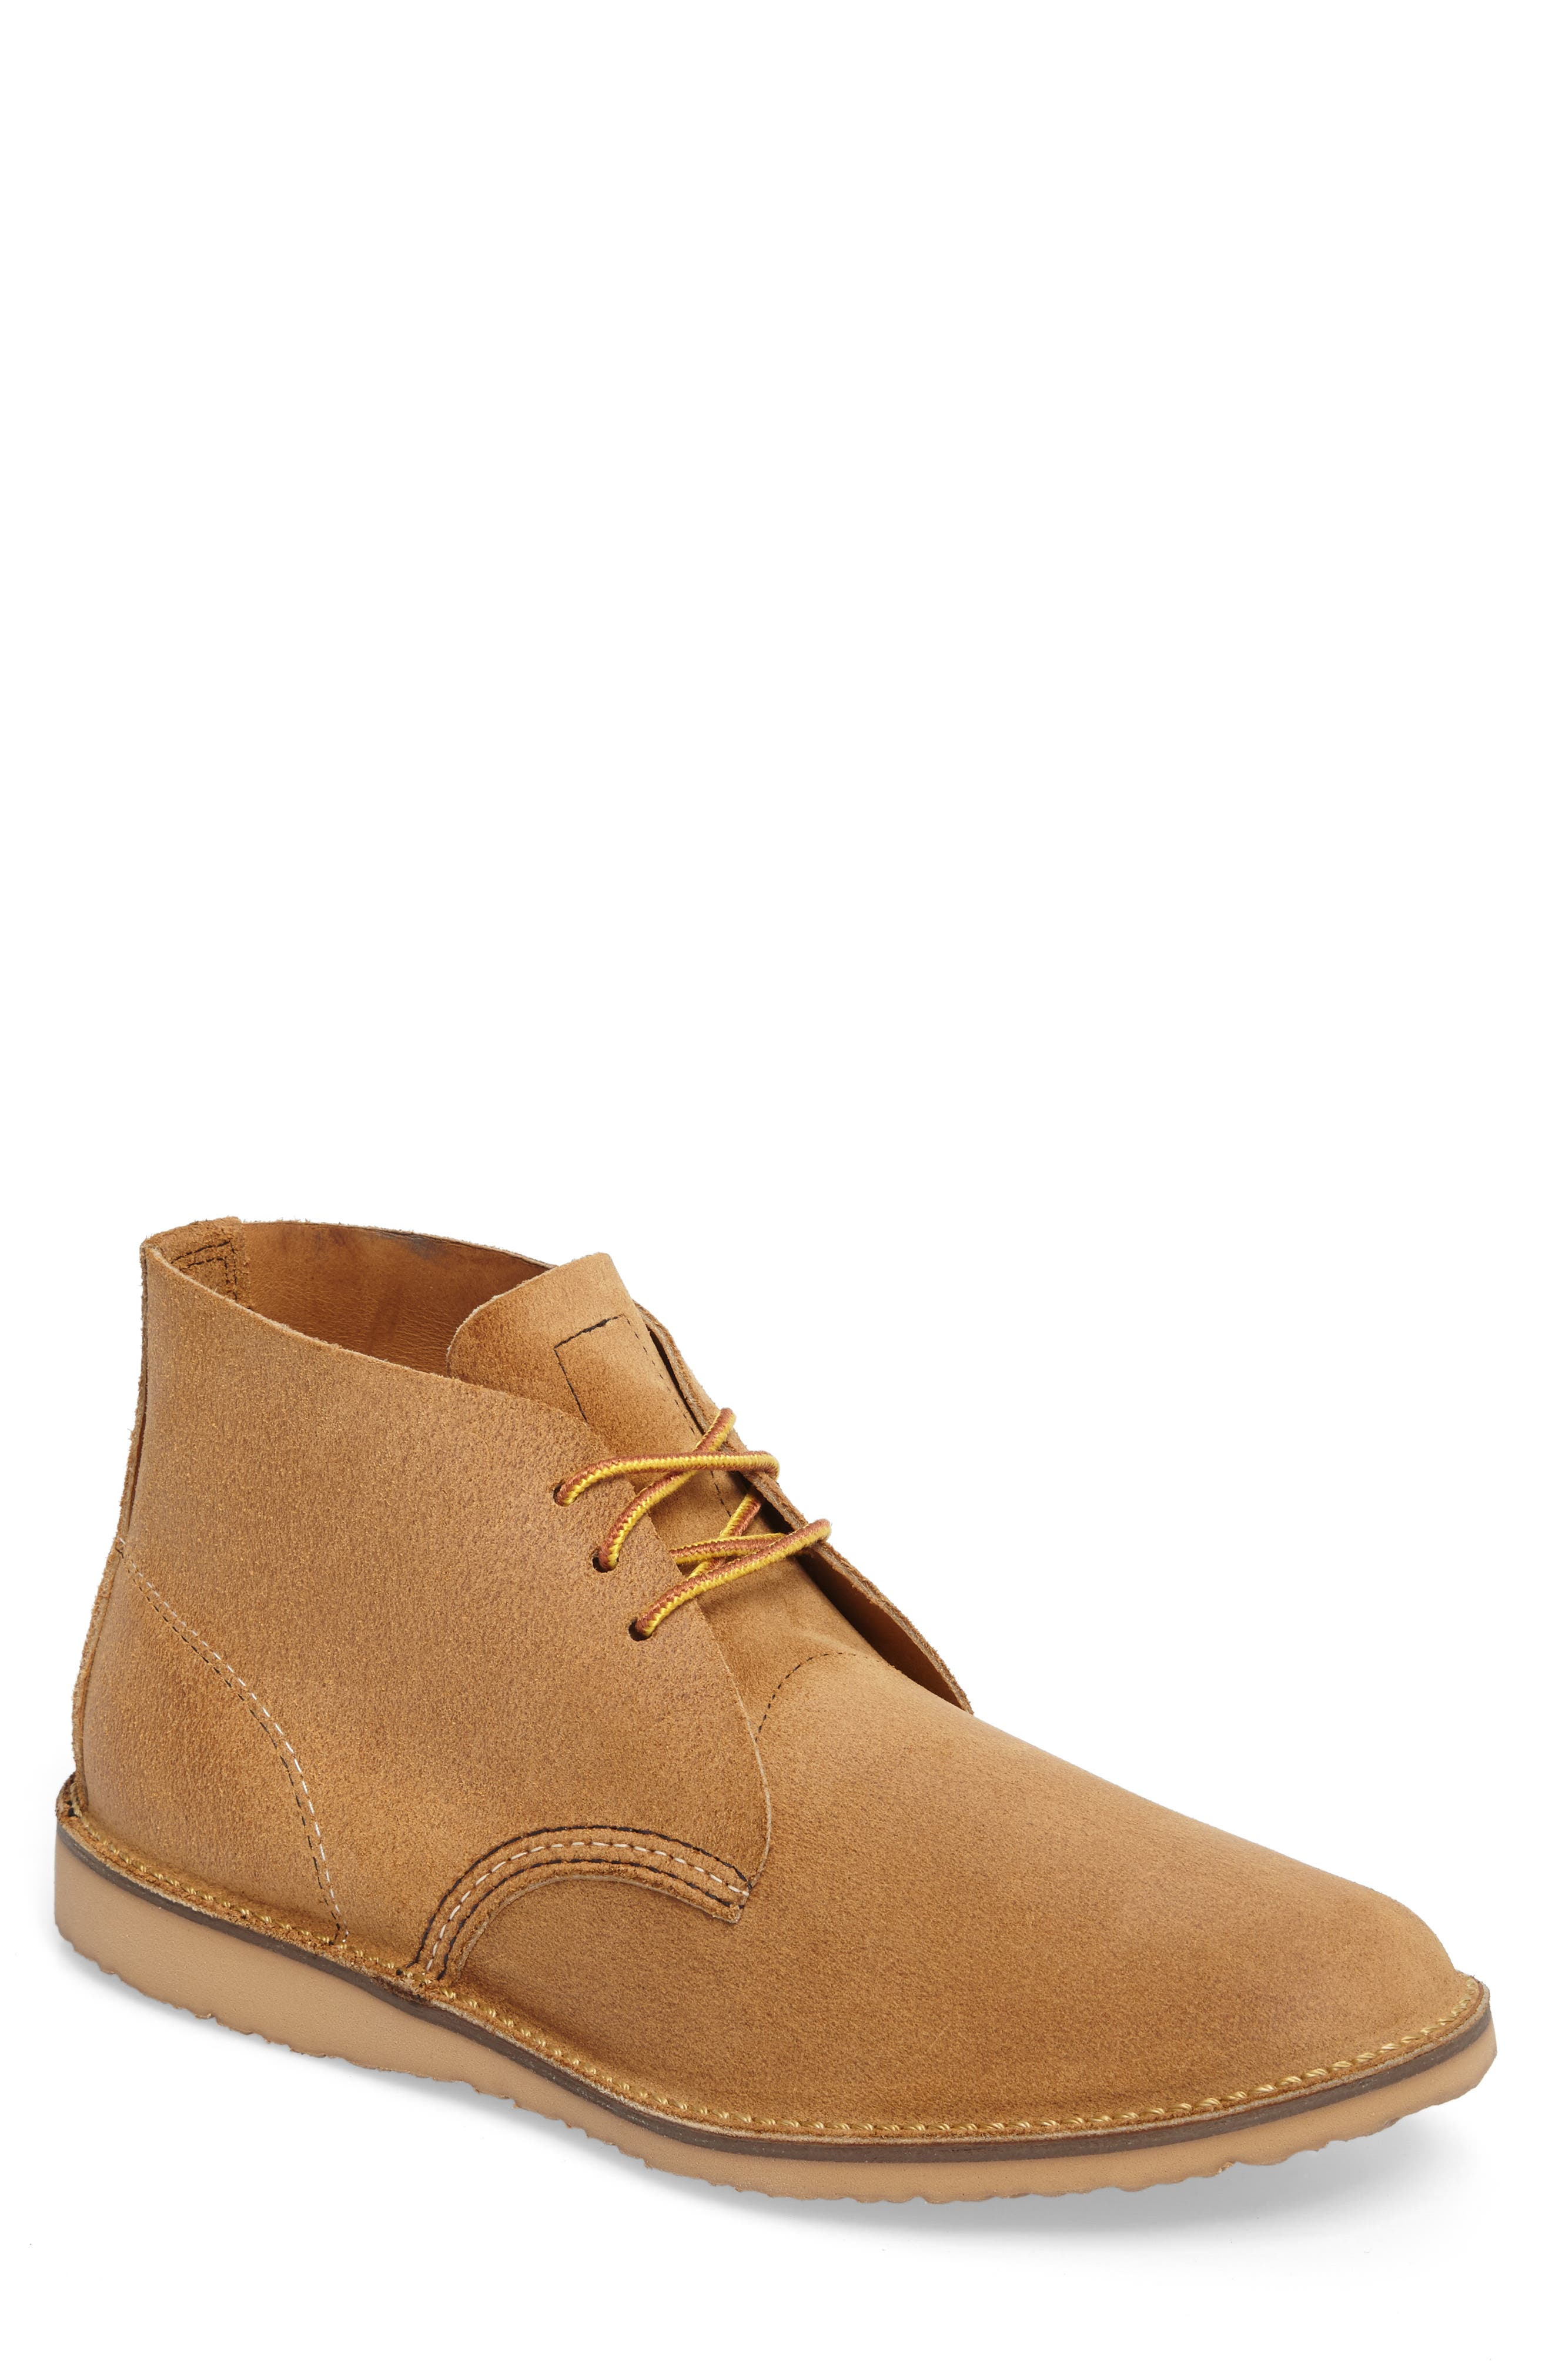 Alternate Image 1 Selected - Red Wing Chukka Boot (Men)